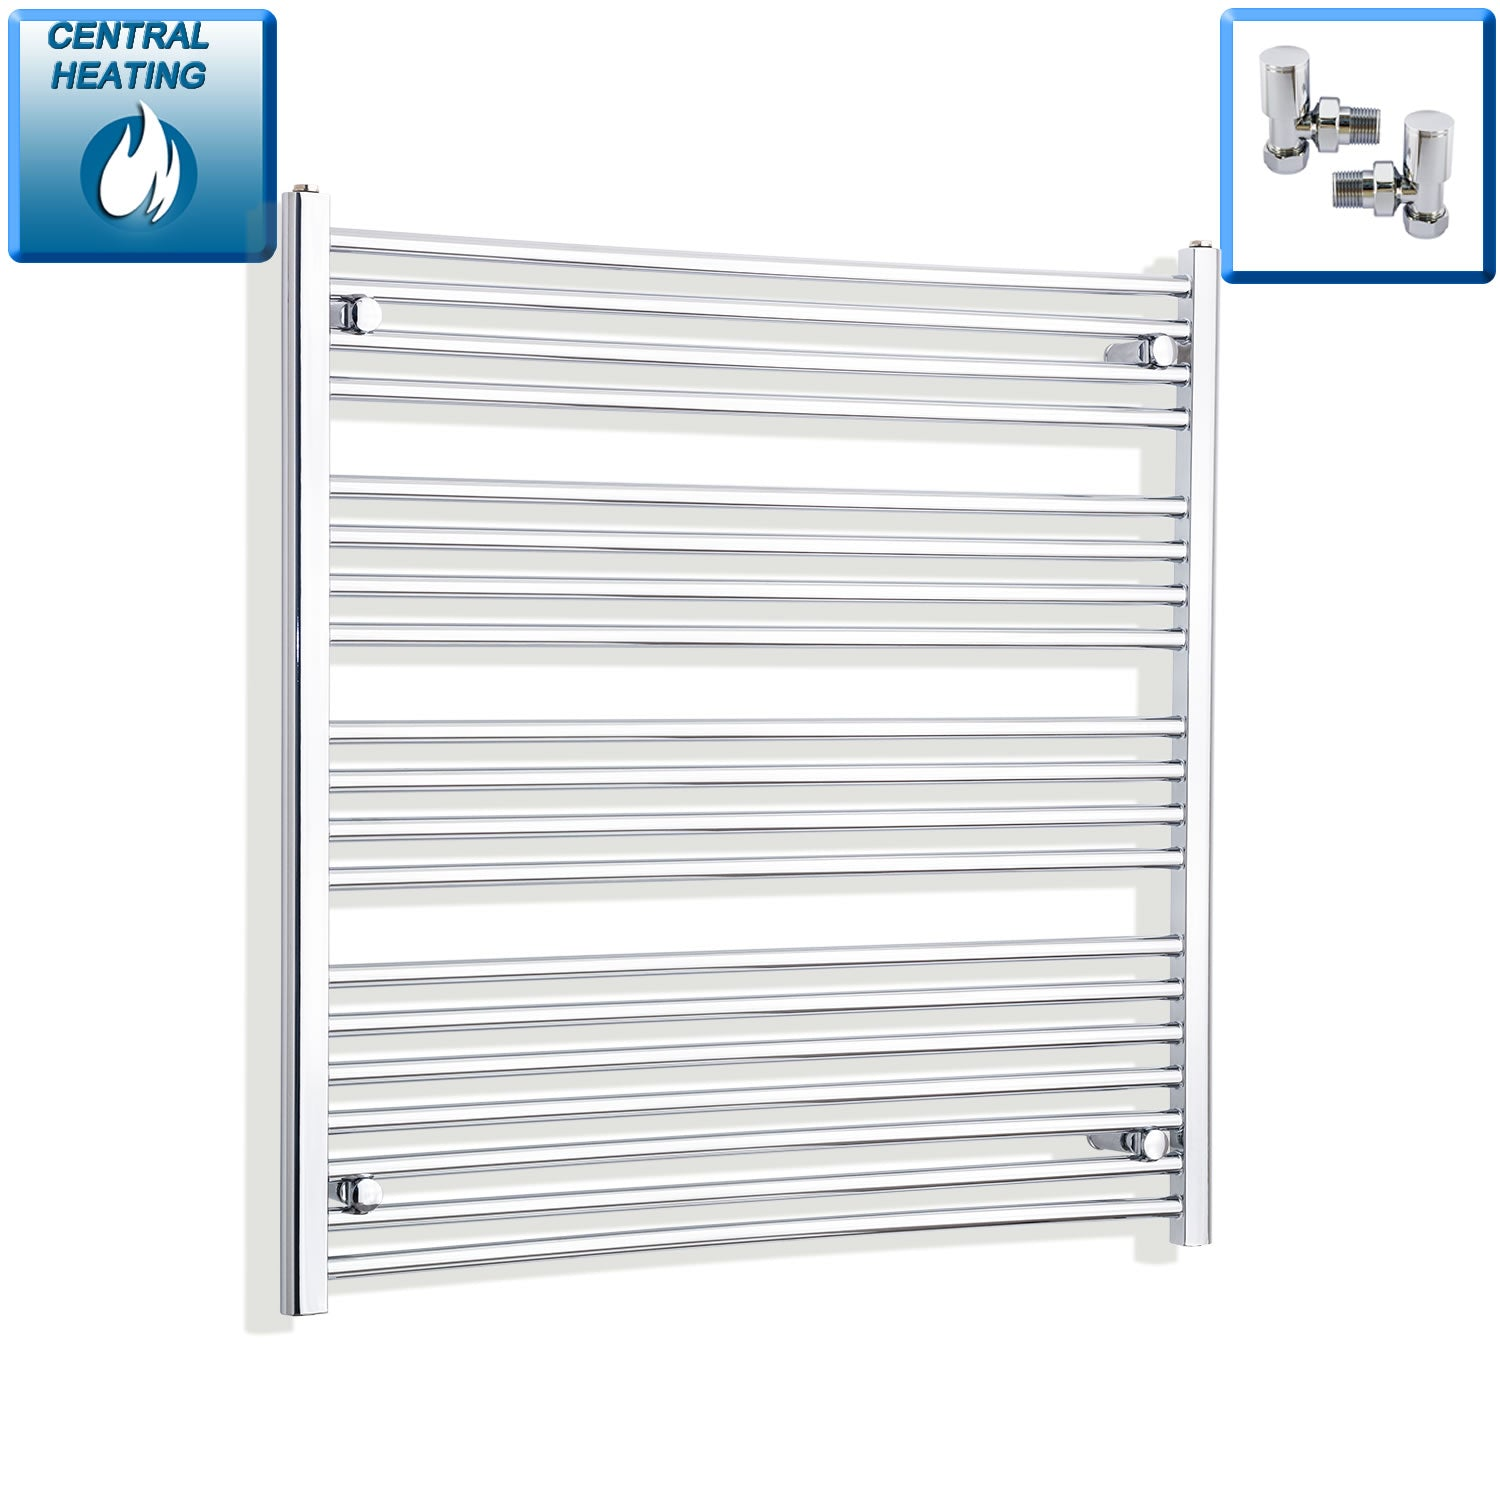 1000mm Wide 1000mm High Chrome Towel Rail Radiator With Angled Valve